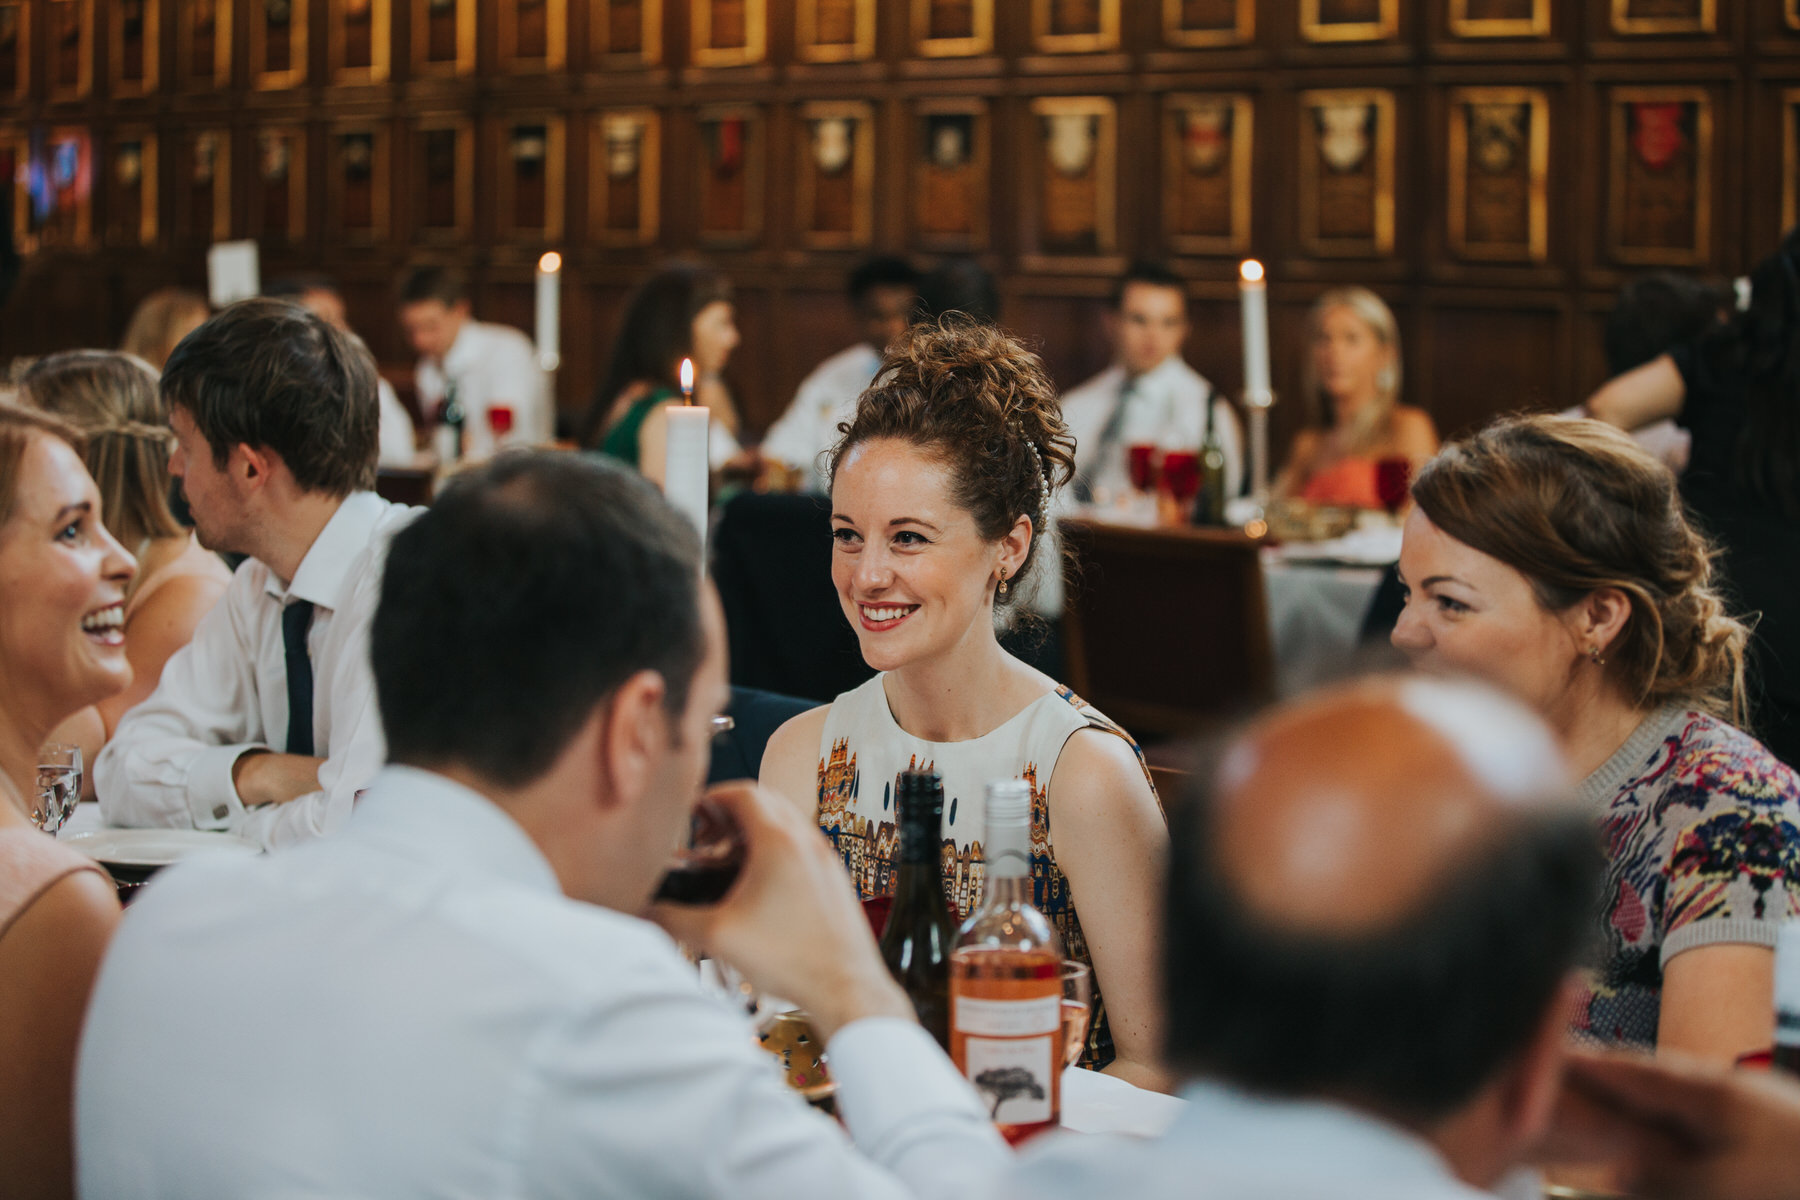 184-Anglo-Asian-London-Wedding-Middle-temple-guest-candids.jpg